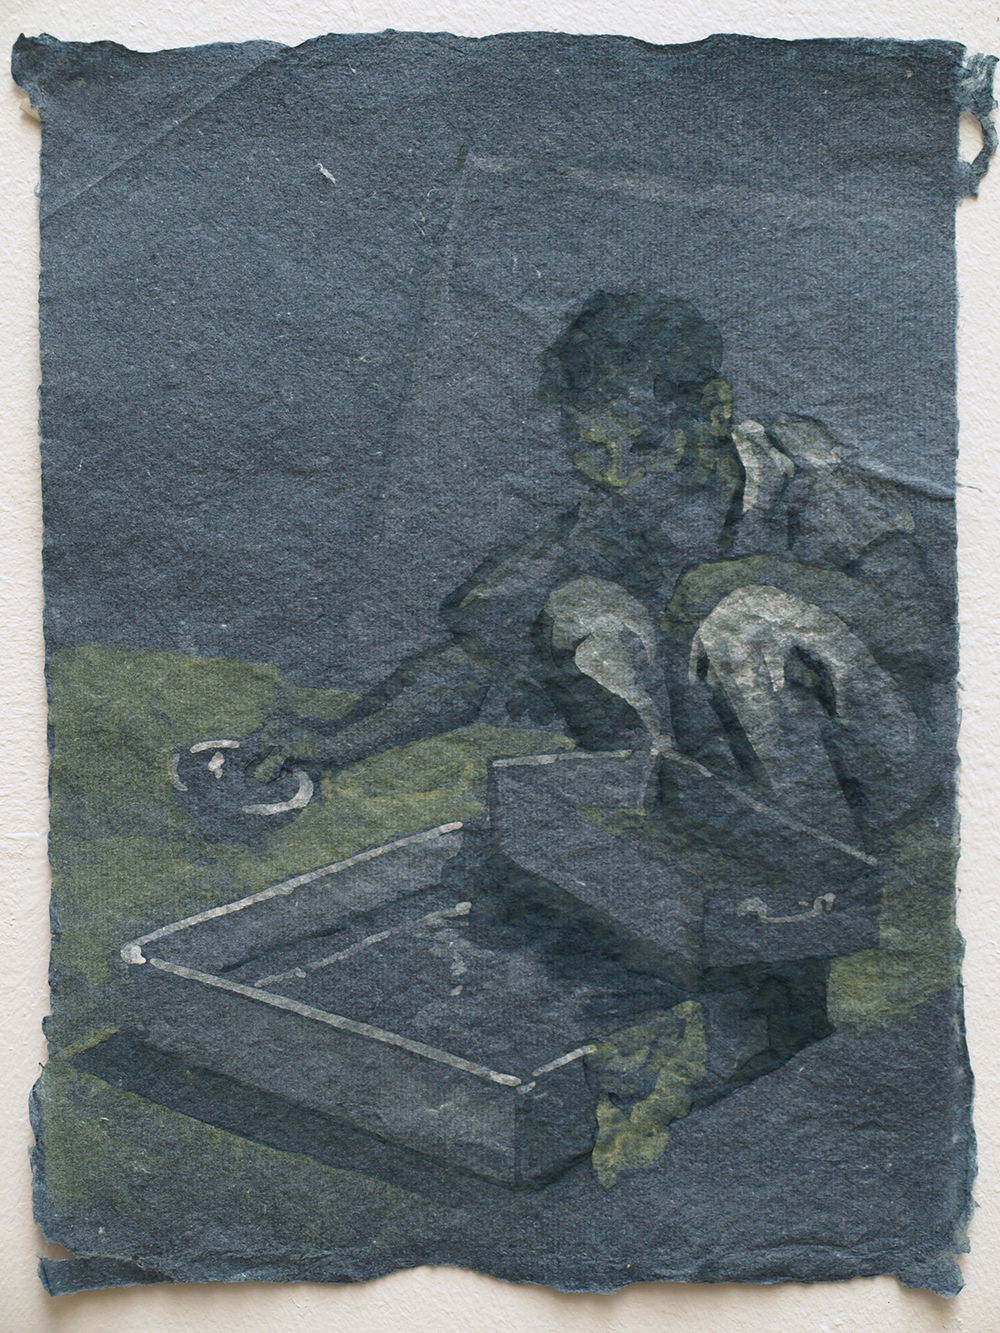 He Xiu Jun making paper, 2011